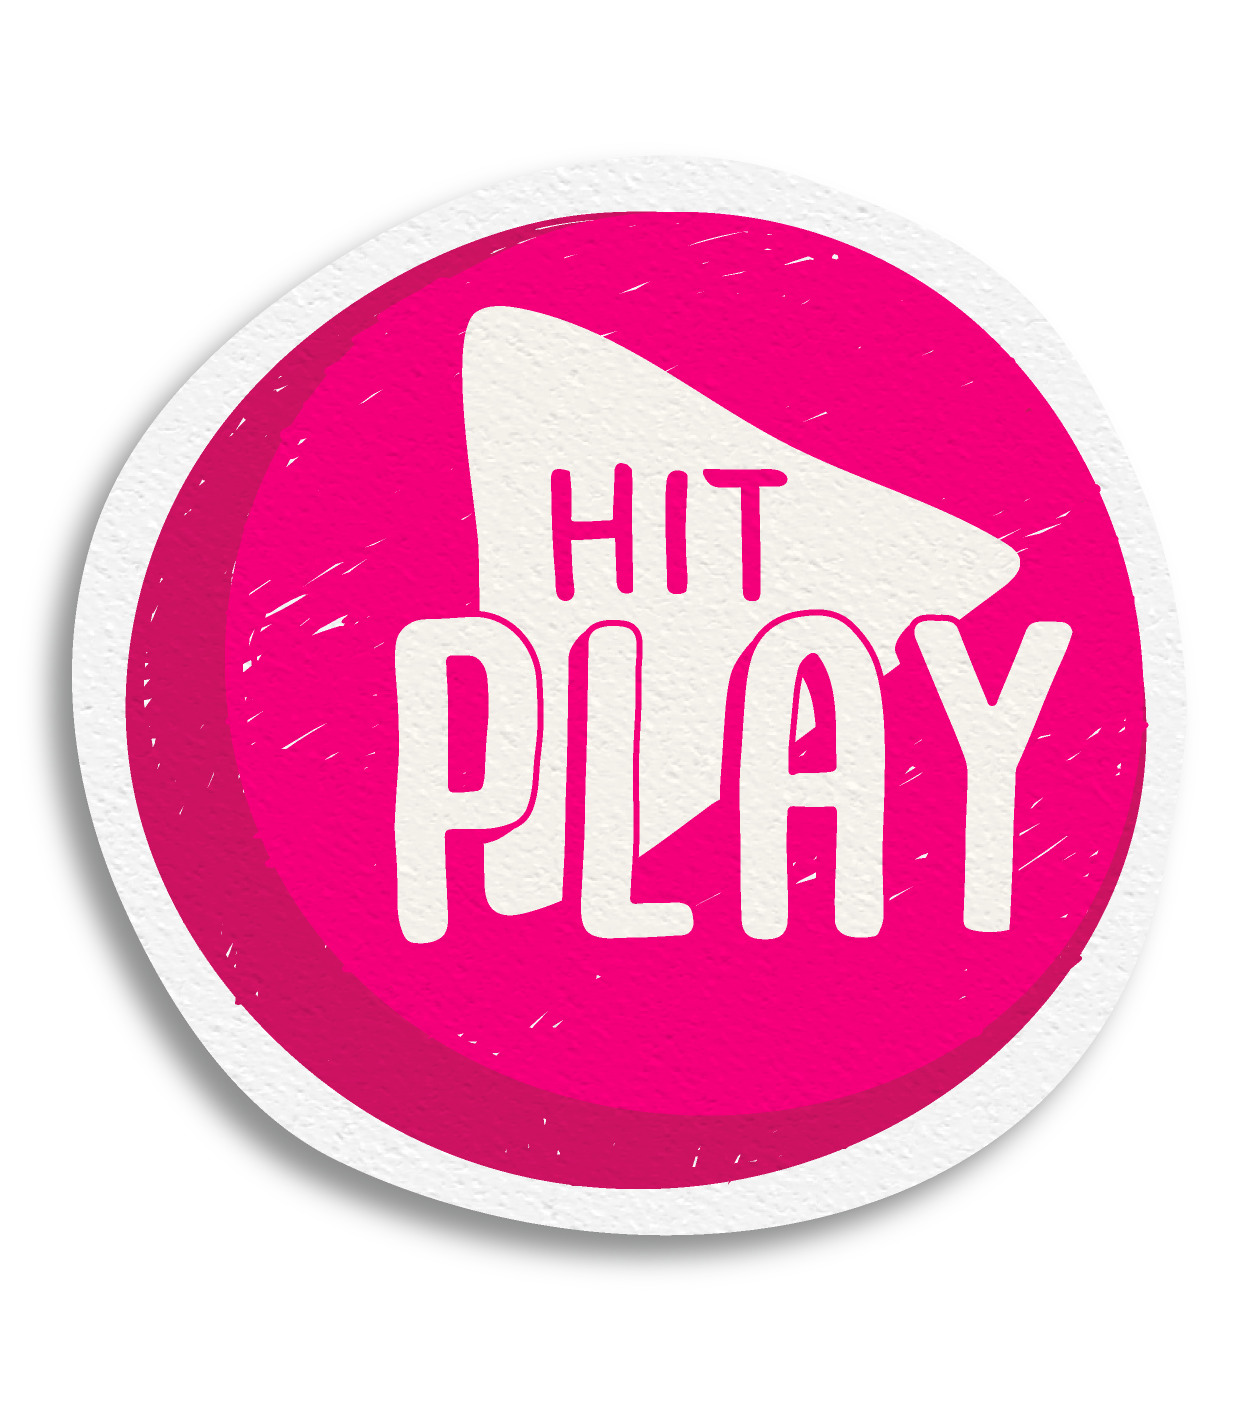 Official Hit Play logo.